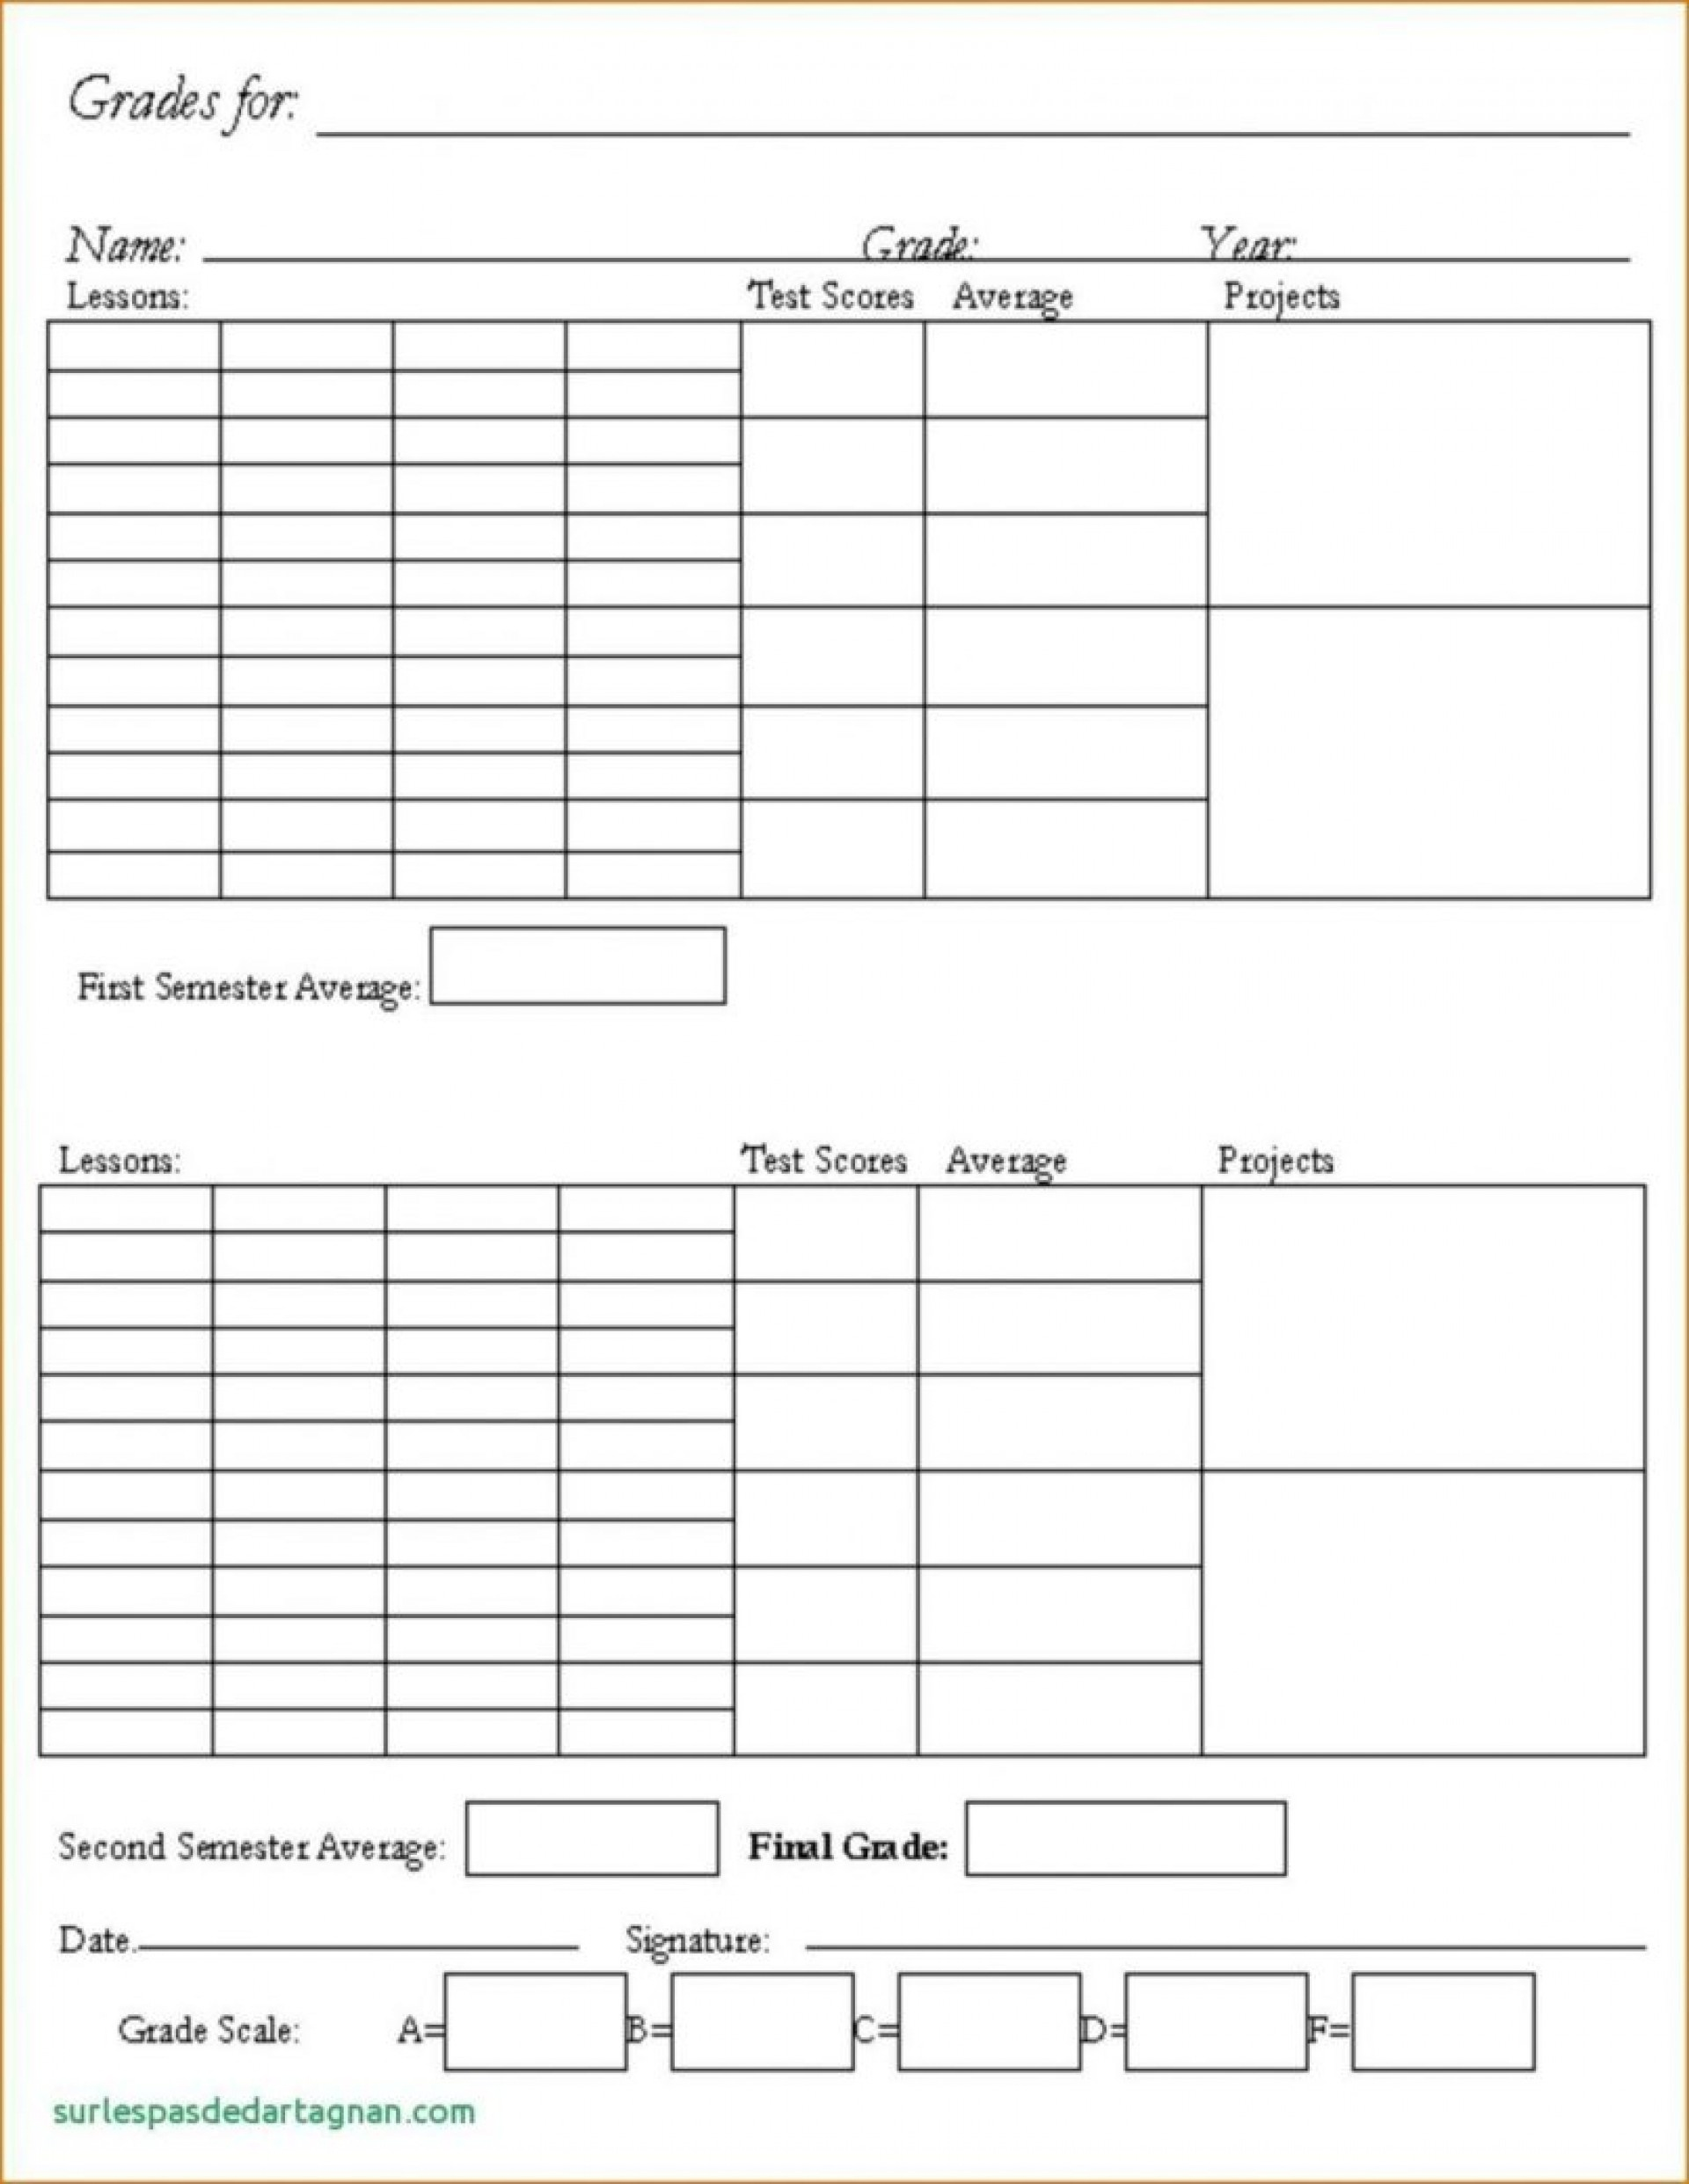 001 Middle School Report Card Template Staggering Ideas Standards - Free Printable Report Cards